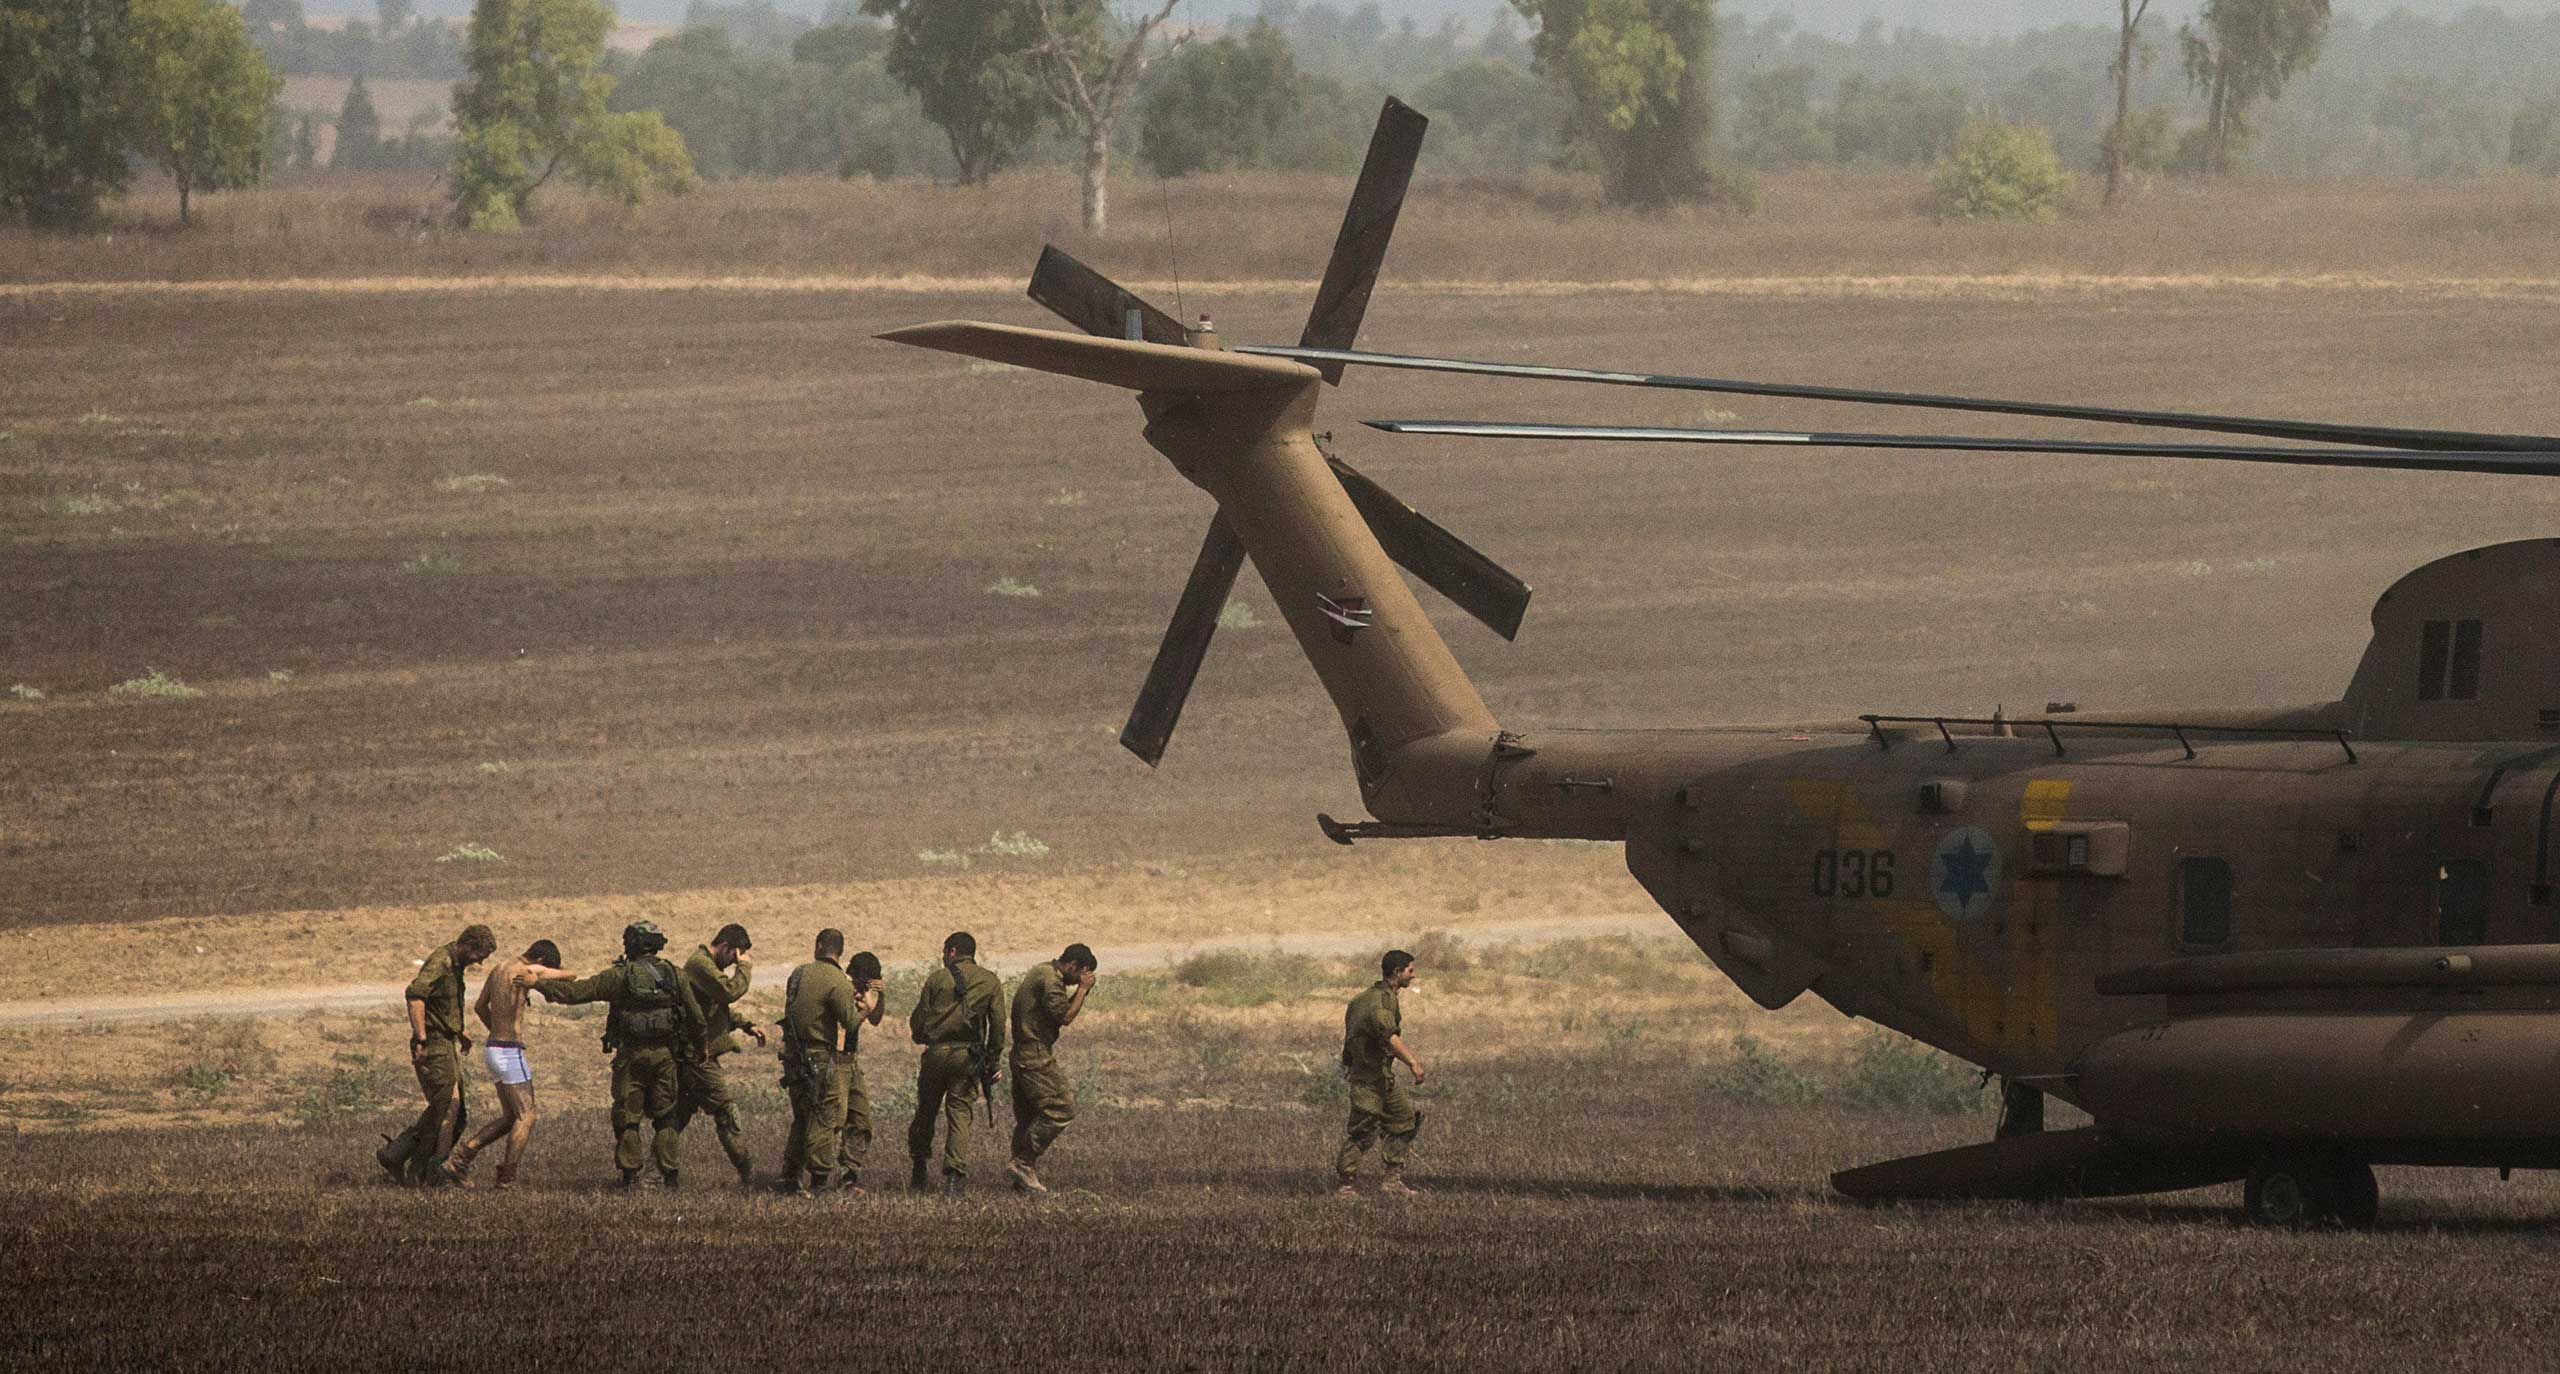 Wounded Israeli soldiers are brought to a helicopter, near Kfar Aza, Israel, on July 23, 2014.